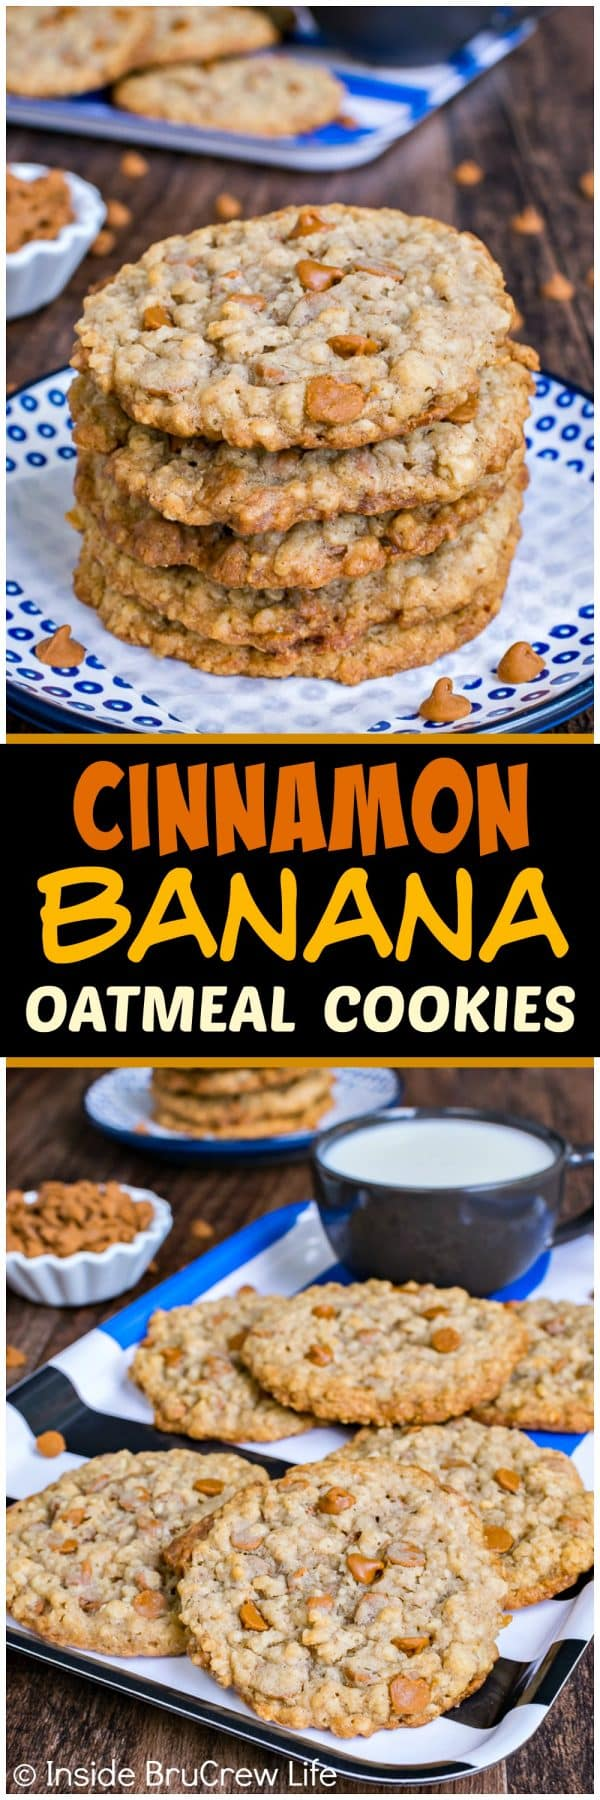 Cinnamon Banana Oatmeal Cookies - these chewy flat cookies have a crispy edge that makes them taste so good. Great recipe to fill your cookie jar with for an after school snack.